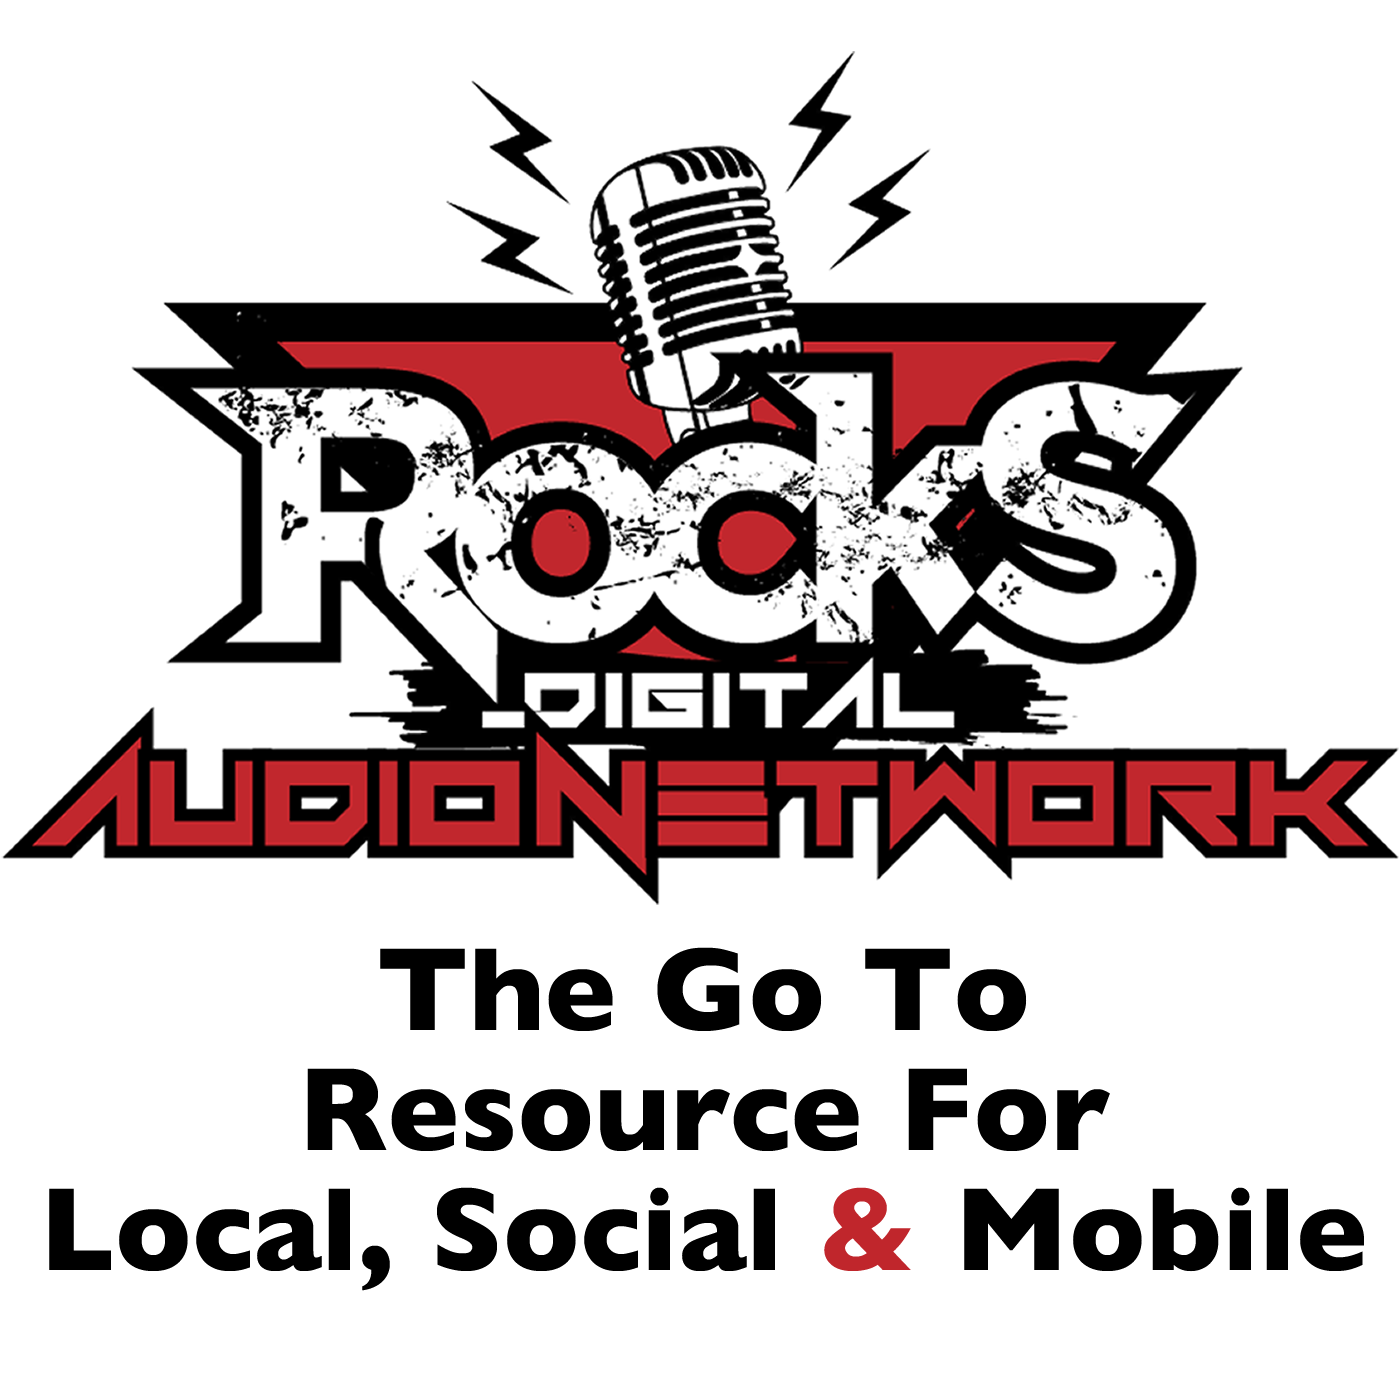 Audio Network – Rocks Digital